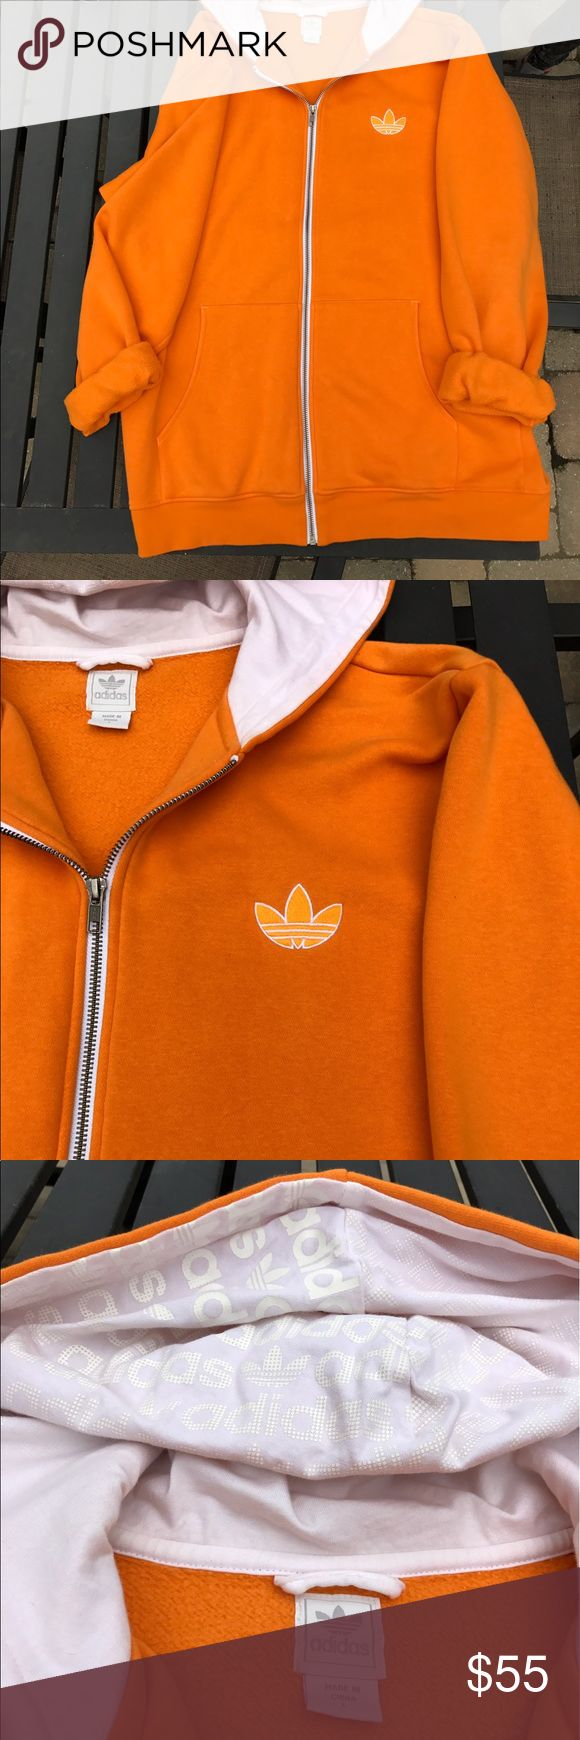 ADIDAS HOODIE Bright orange Adidas hoodie. With white writing in the hood that says adidas repeatedly. Super cute hoodie in perfect condition. Men's Large Adidas Shirts Sweatshirts & Hoodies